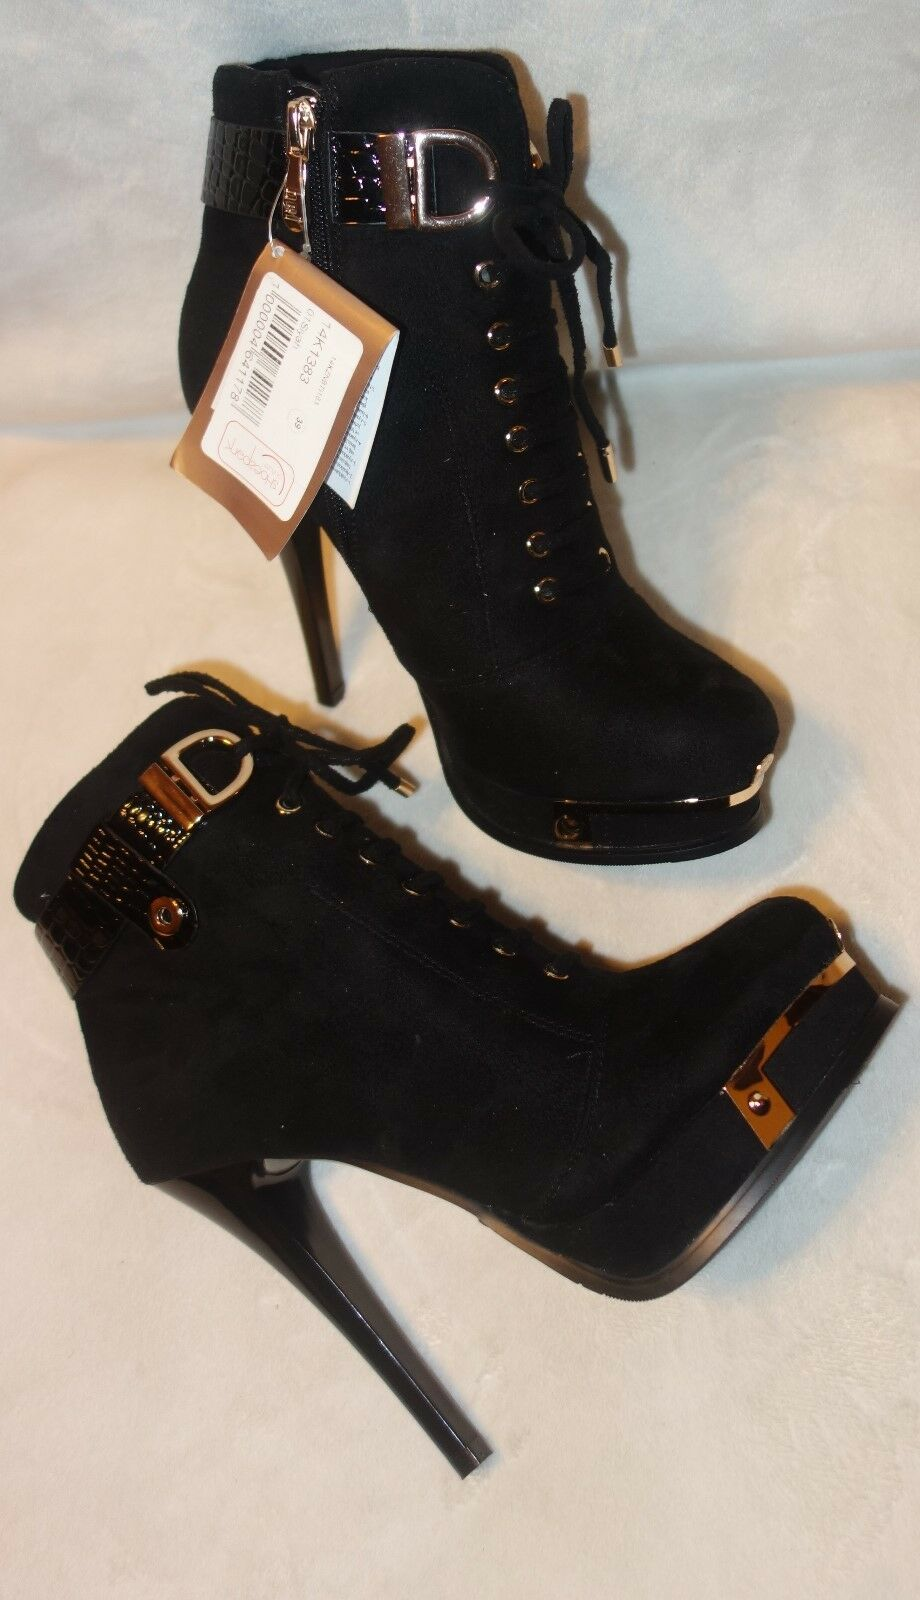 Bej ankle BOOTS black suede boot shoe SZ 37 NEW